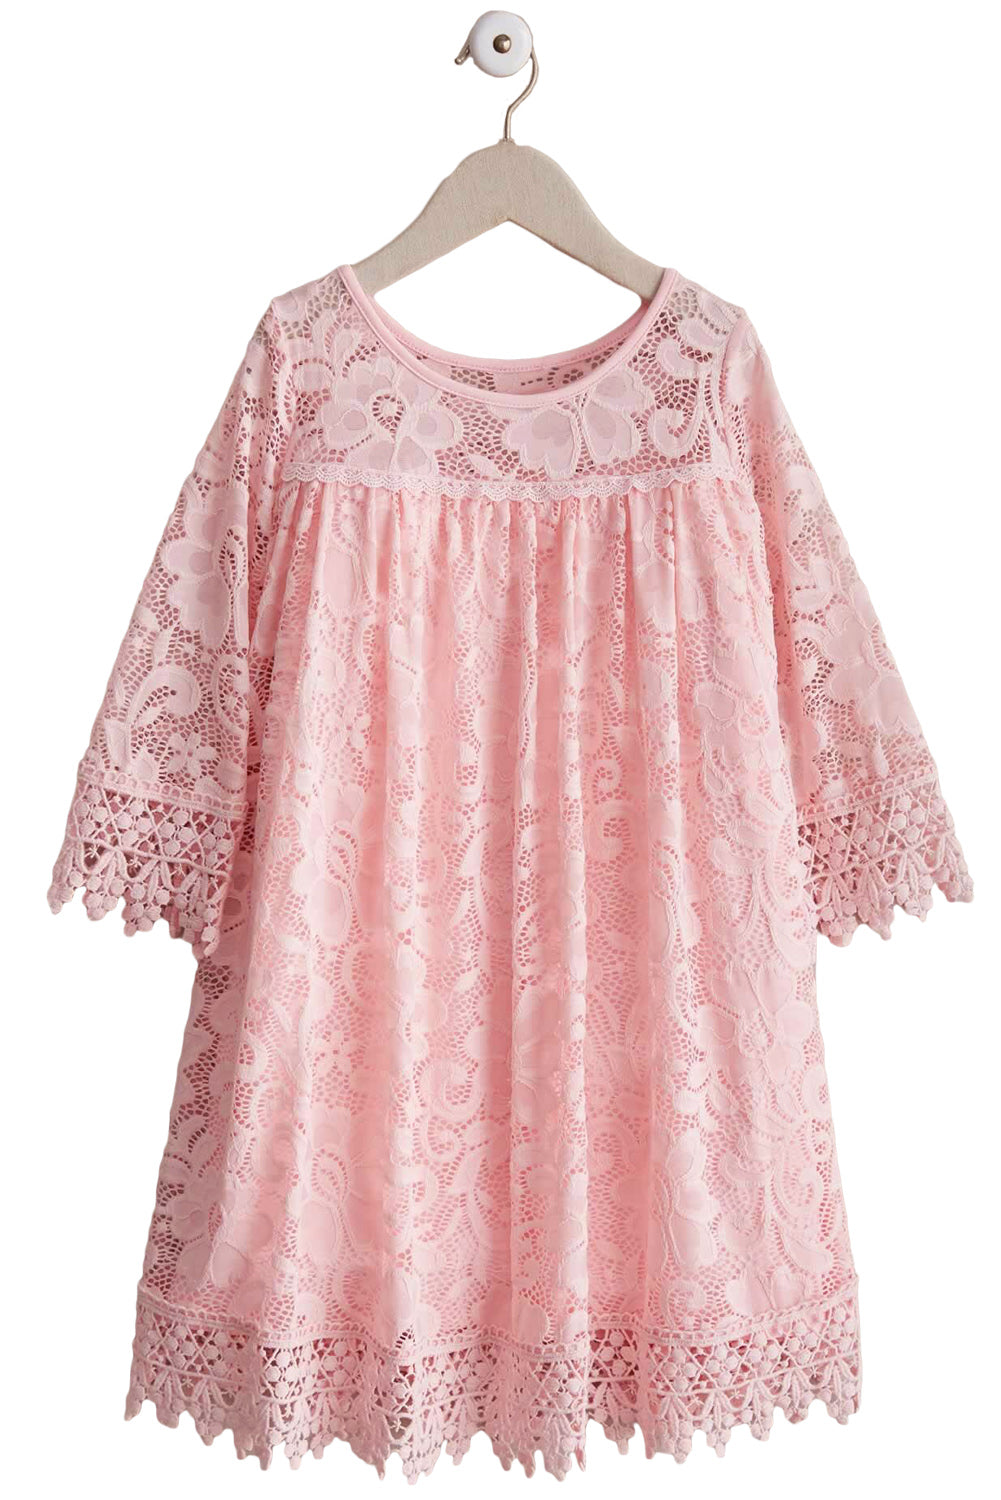 Pink Girls Dreamy Lace Dress